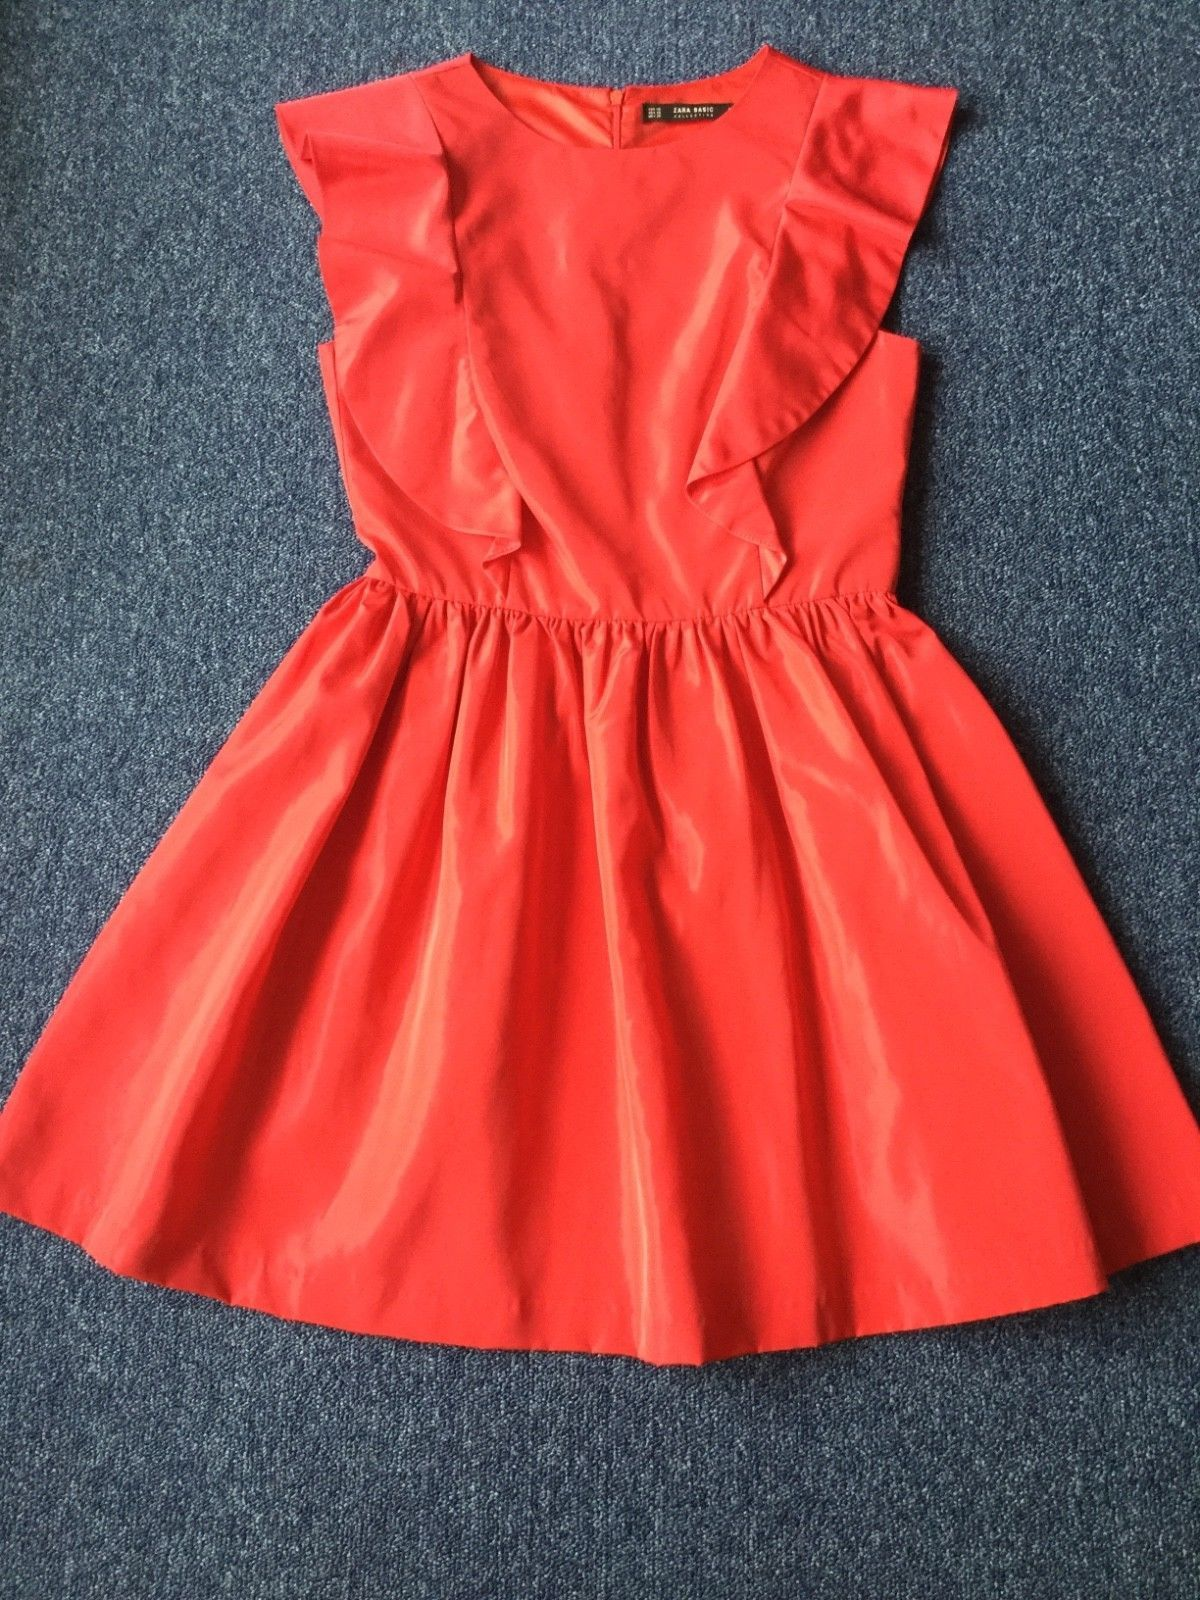 Woman red flannel outfits  Zara Basic Collection Womens Dress Size XS Red Boat Neck C